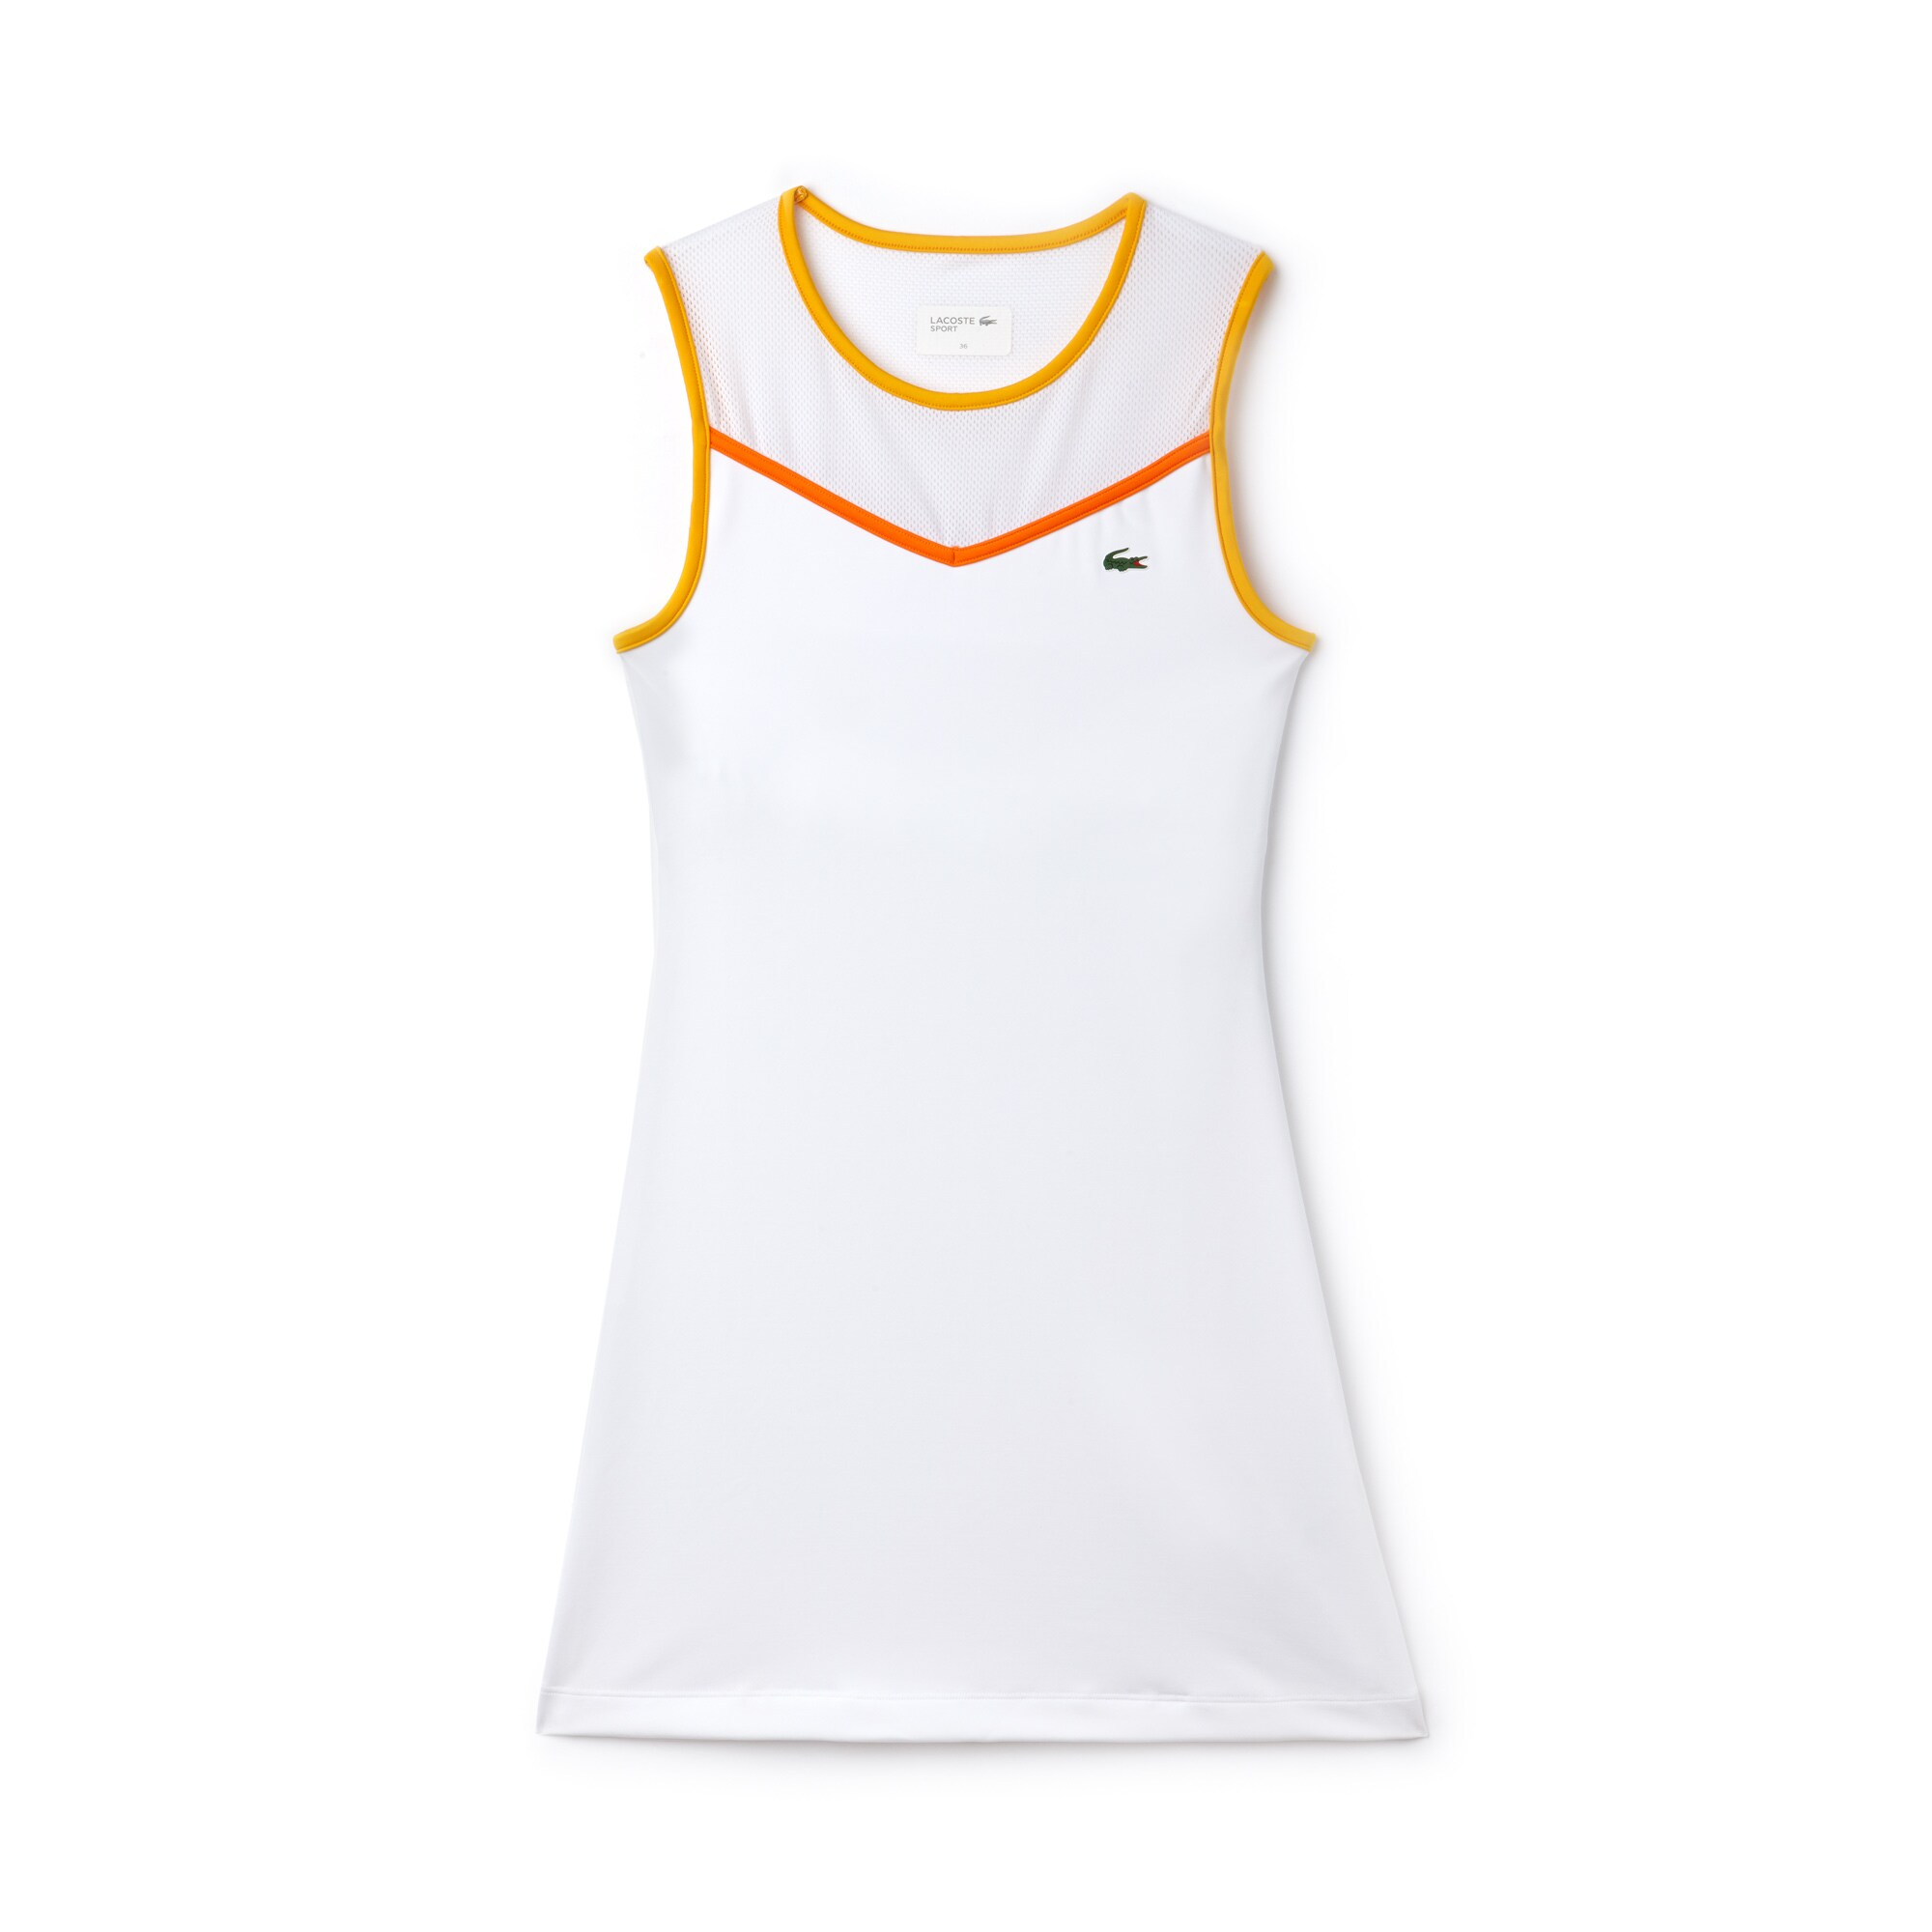 Women's Lacoste SPORT Tech Jersey And Mesh Racerback Tennis Dress